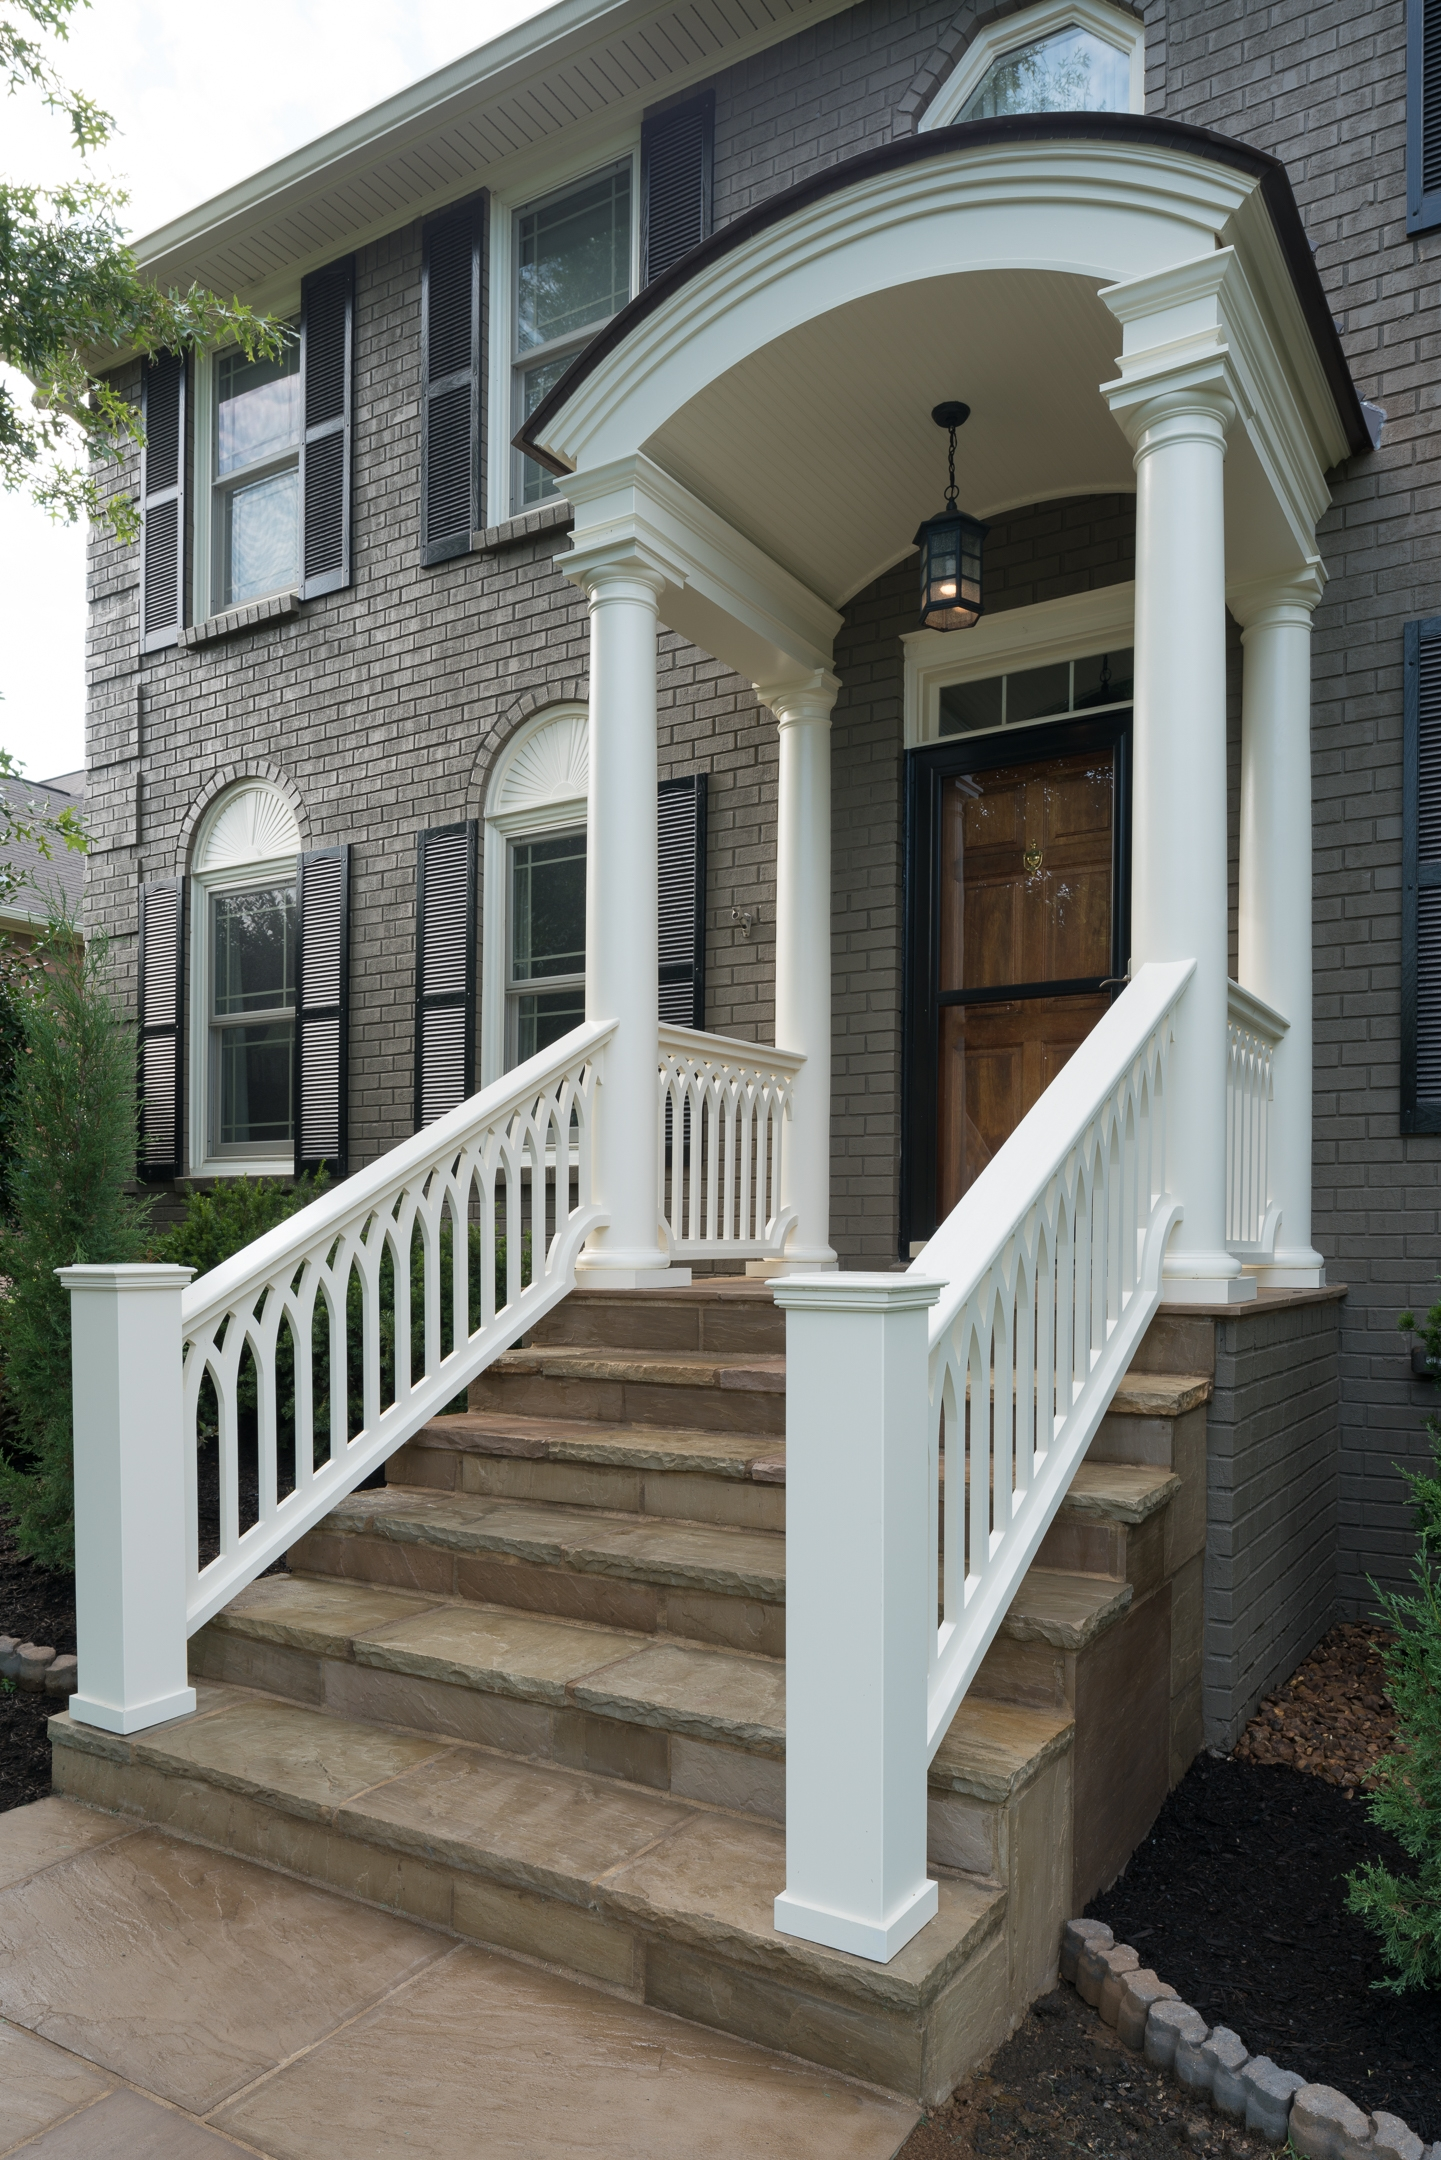 No Matter Where You Live Never Fear The Porch Store Is Here | Pvc Railings For Steps | 3 Step | Plastic | Corner Interior Stair | Steel Vertical Balustrade White Handrail Post | Design